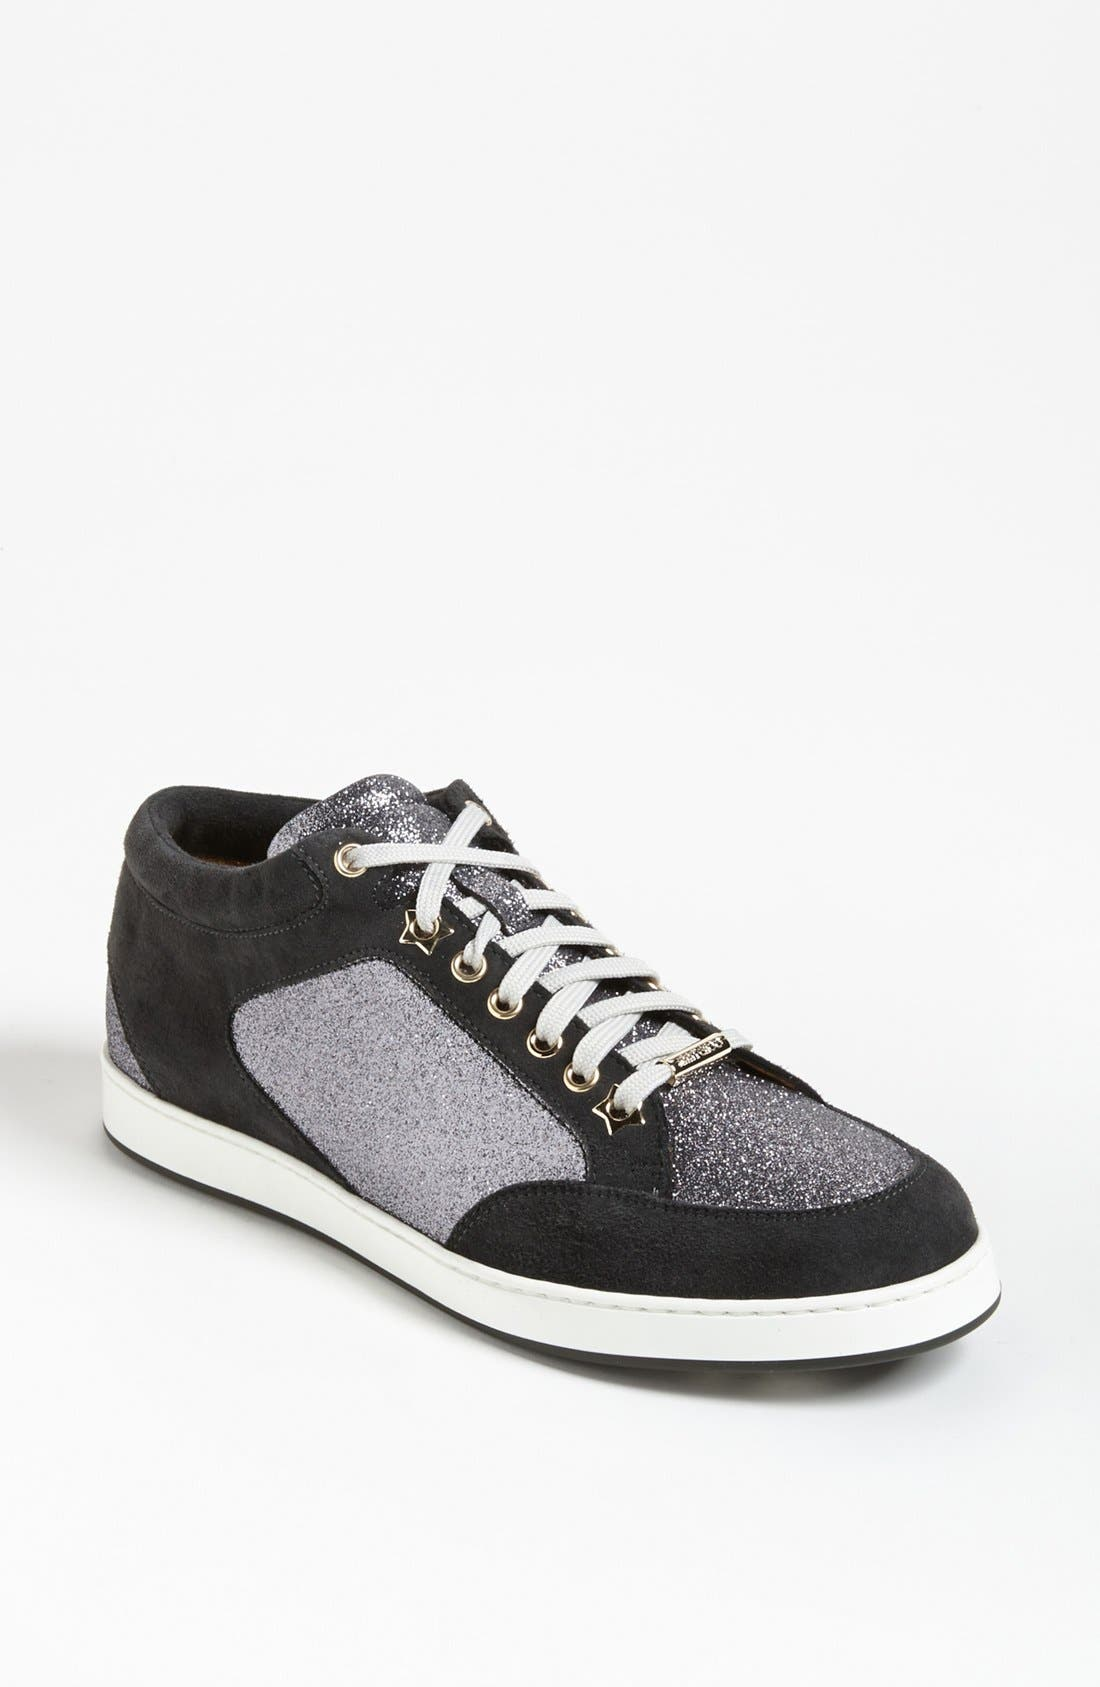 Main Image - Jimmy Choo 'Miami' Sneaker